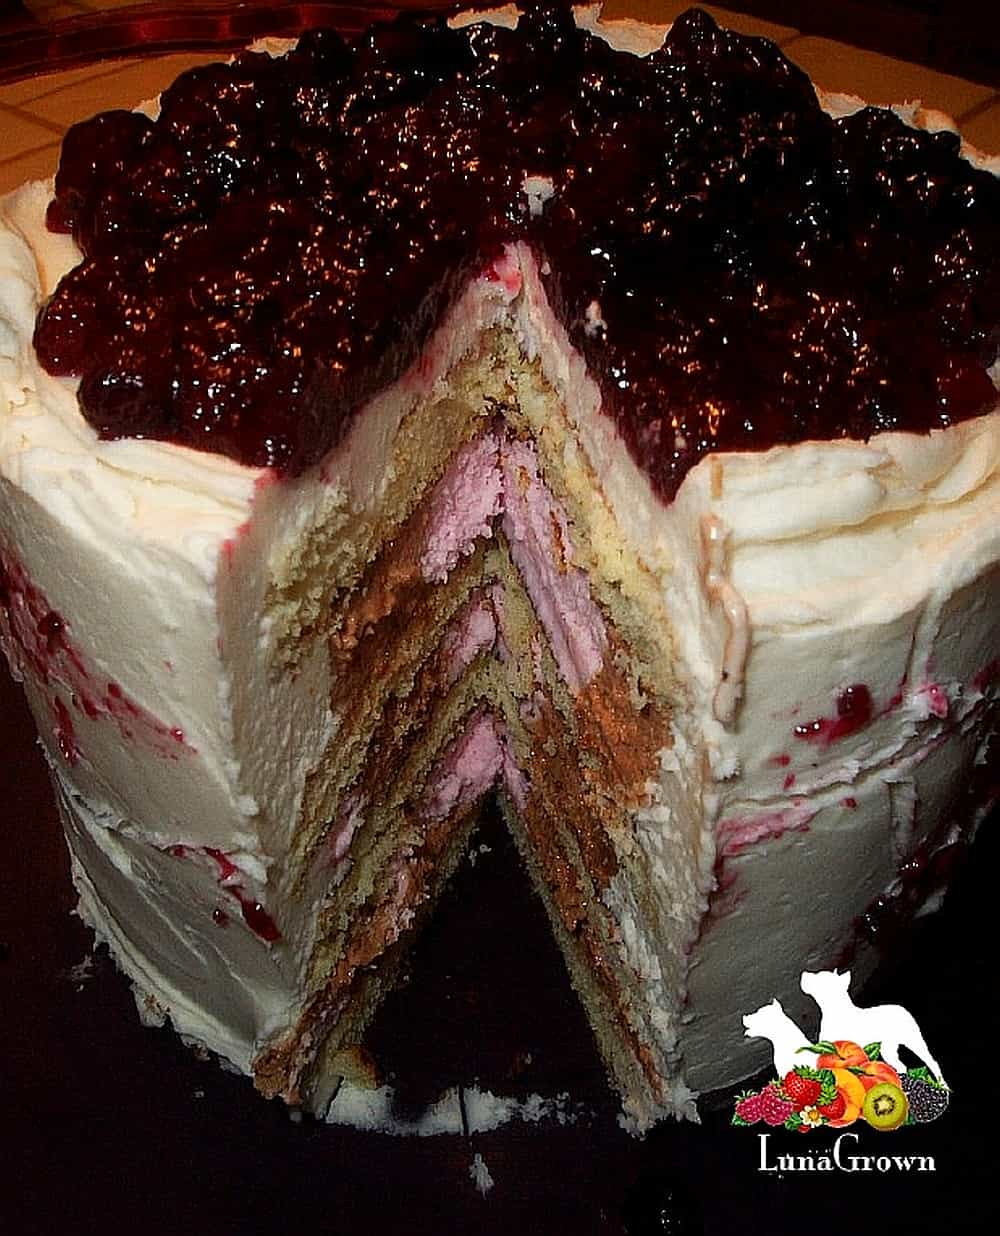 Ice Cream Cake with LunaGrown Blueberry Jam